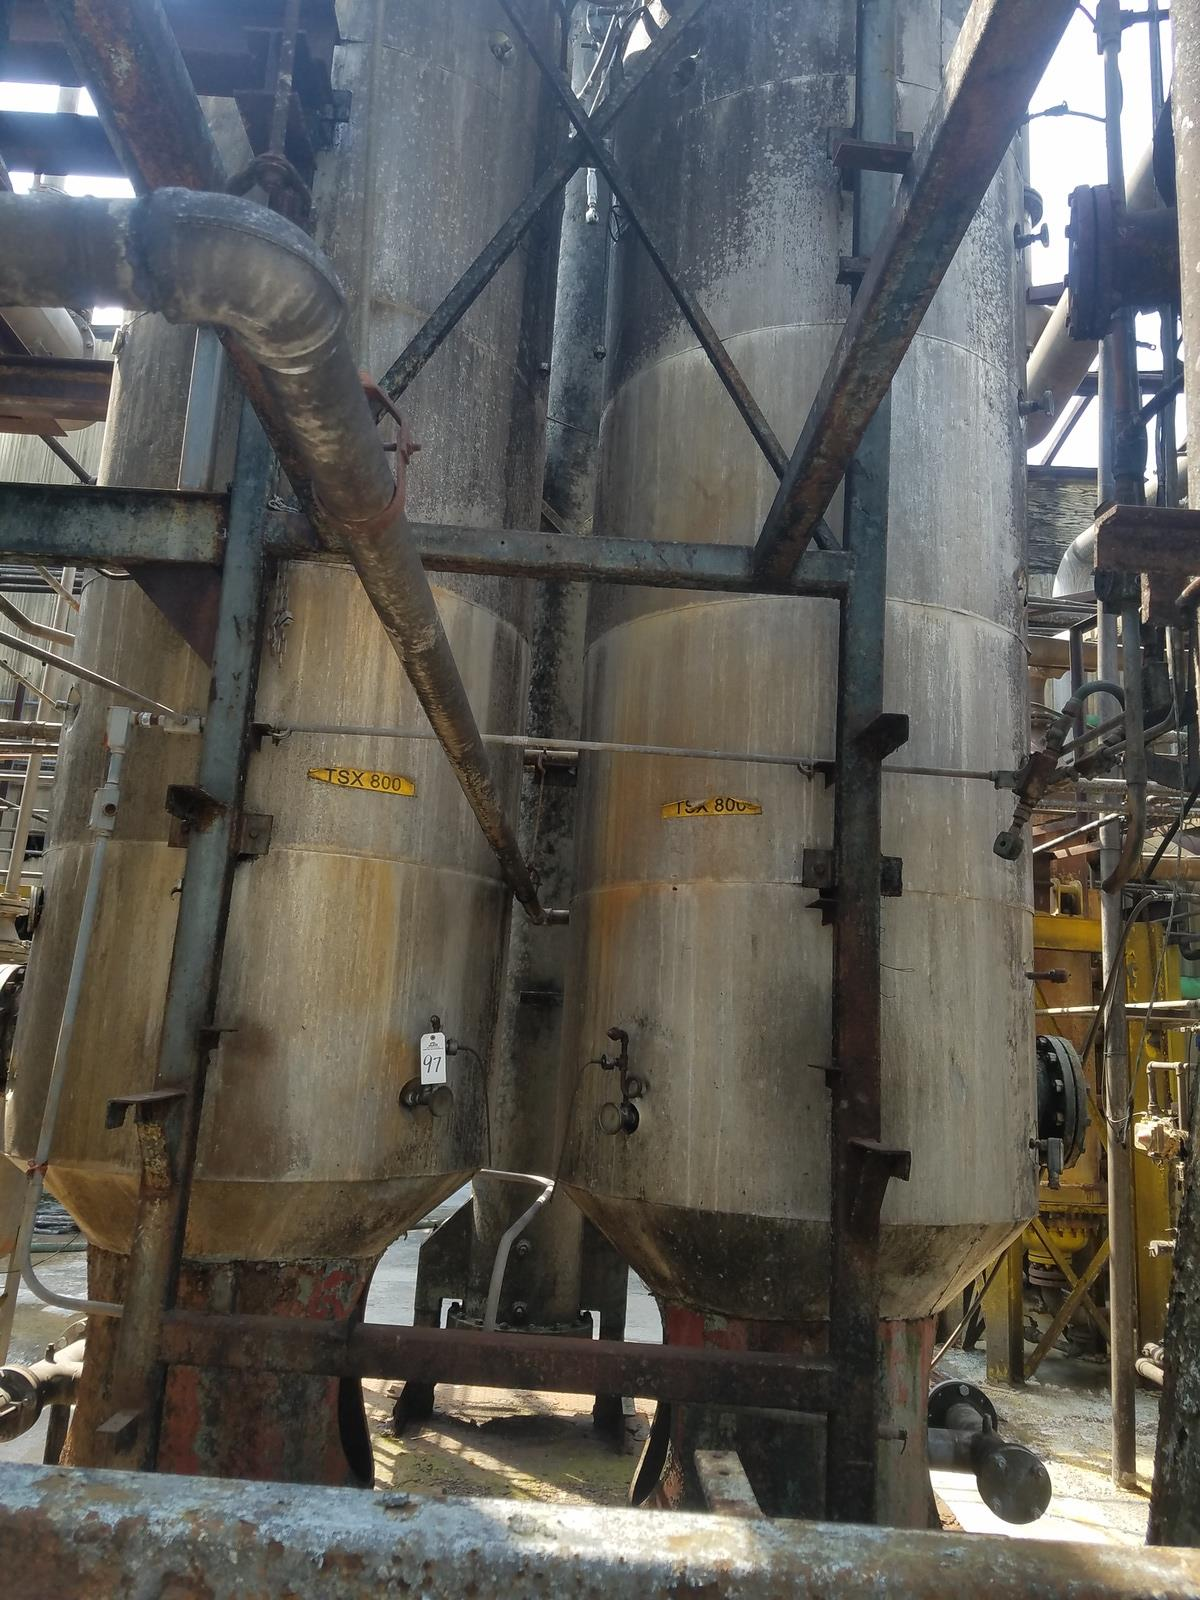 Lot of (2) Condenser Columns, (Ref. TSX 800) | Rig Fee: Contact Rigger